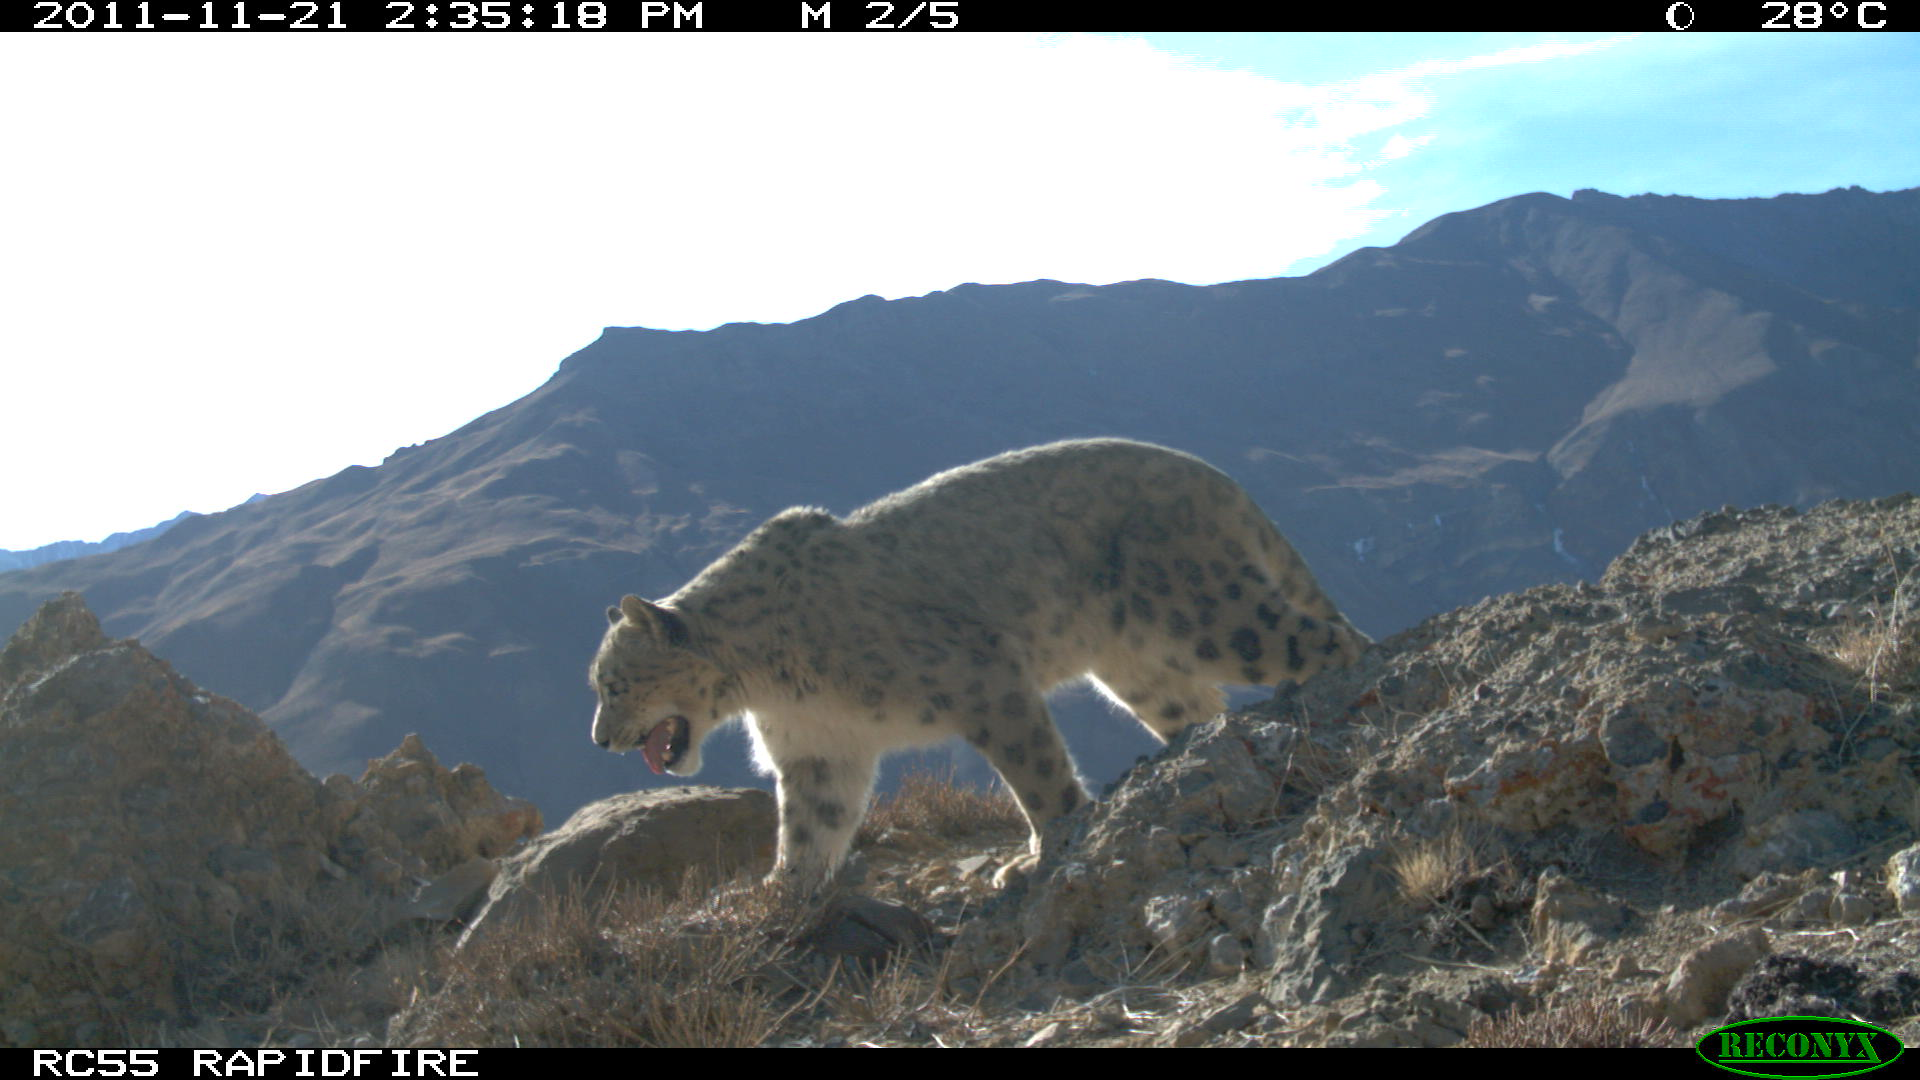 a snow leopard roaming India's Himalayas